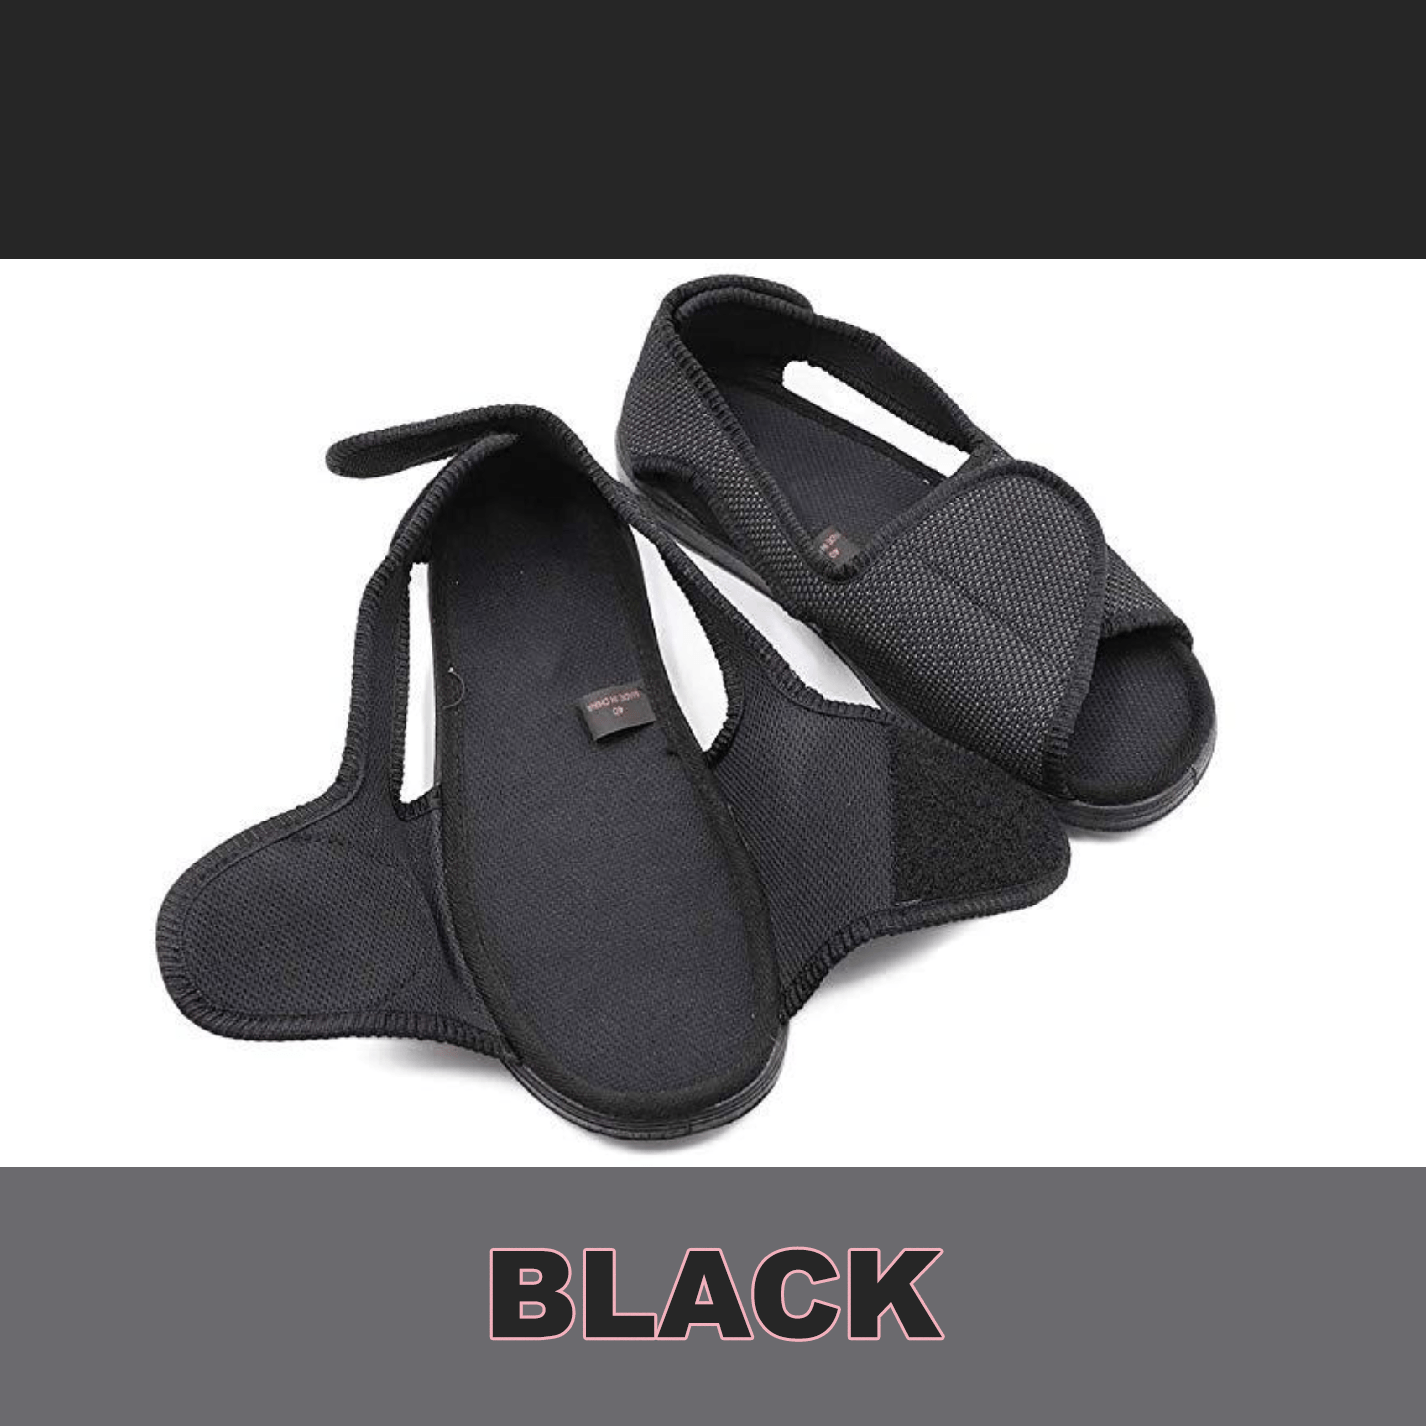 Medical Grade Perfect Adjustment Shoes